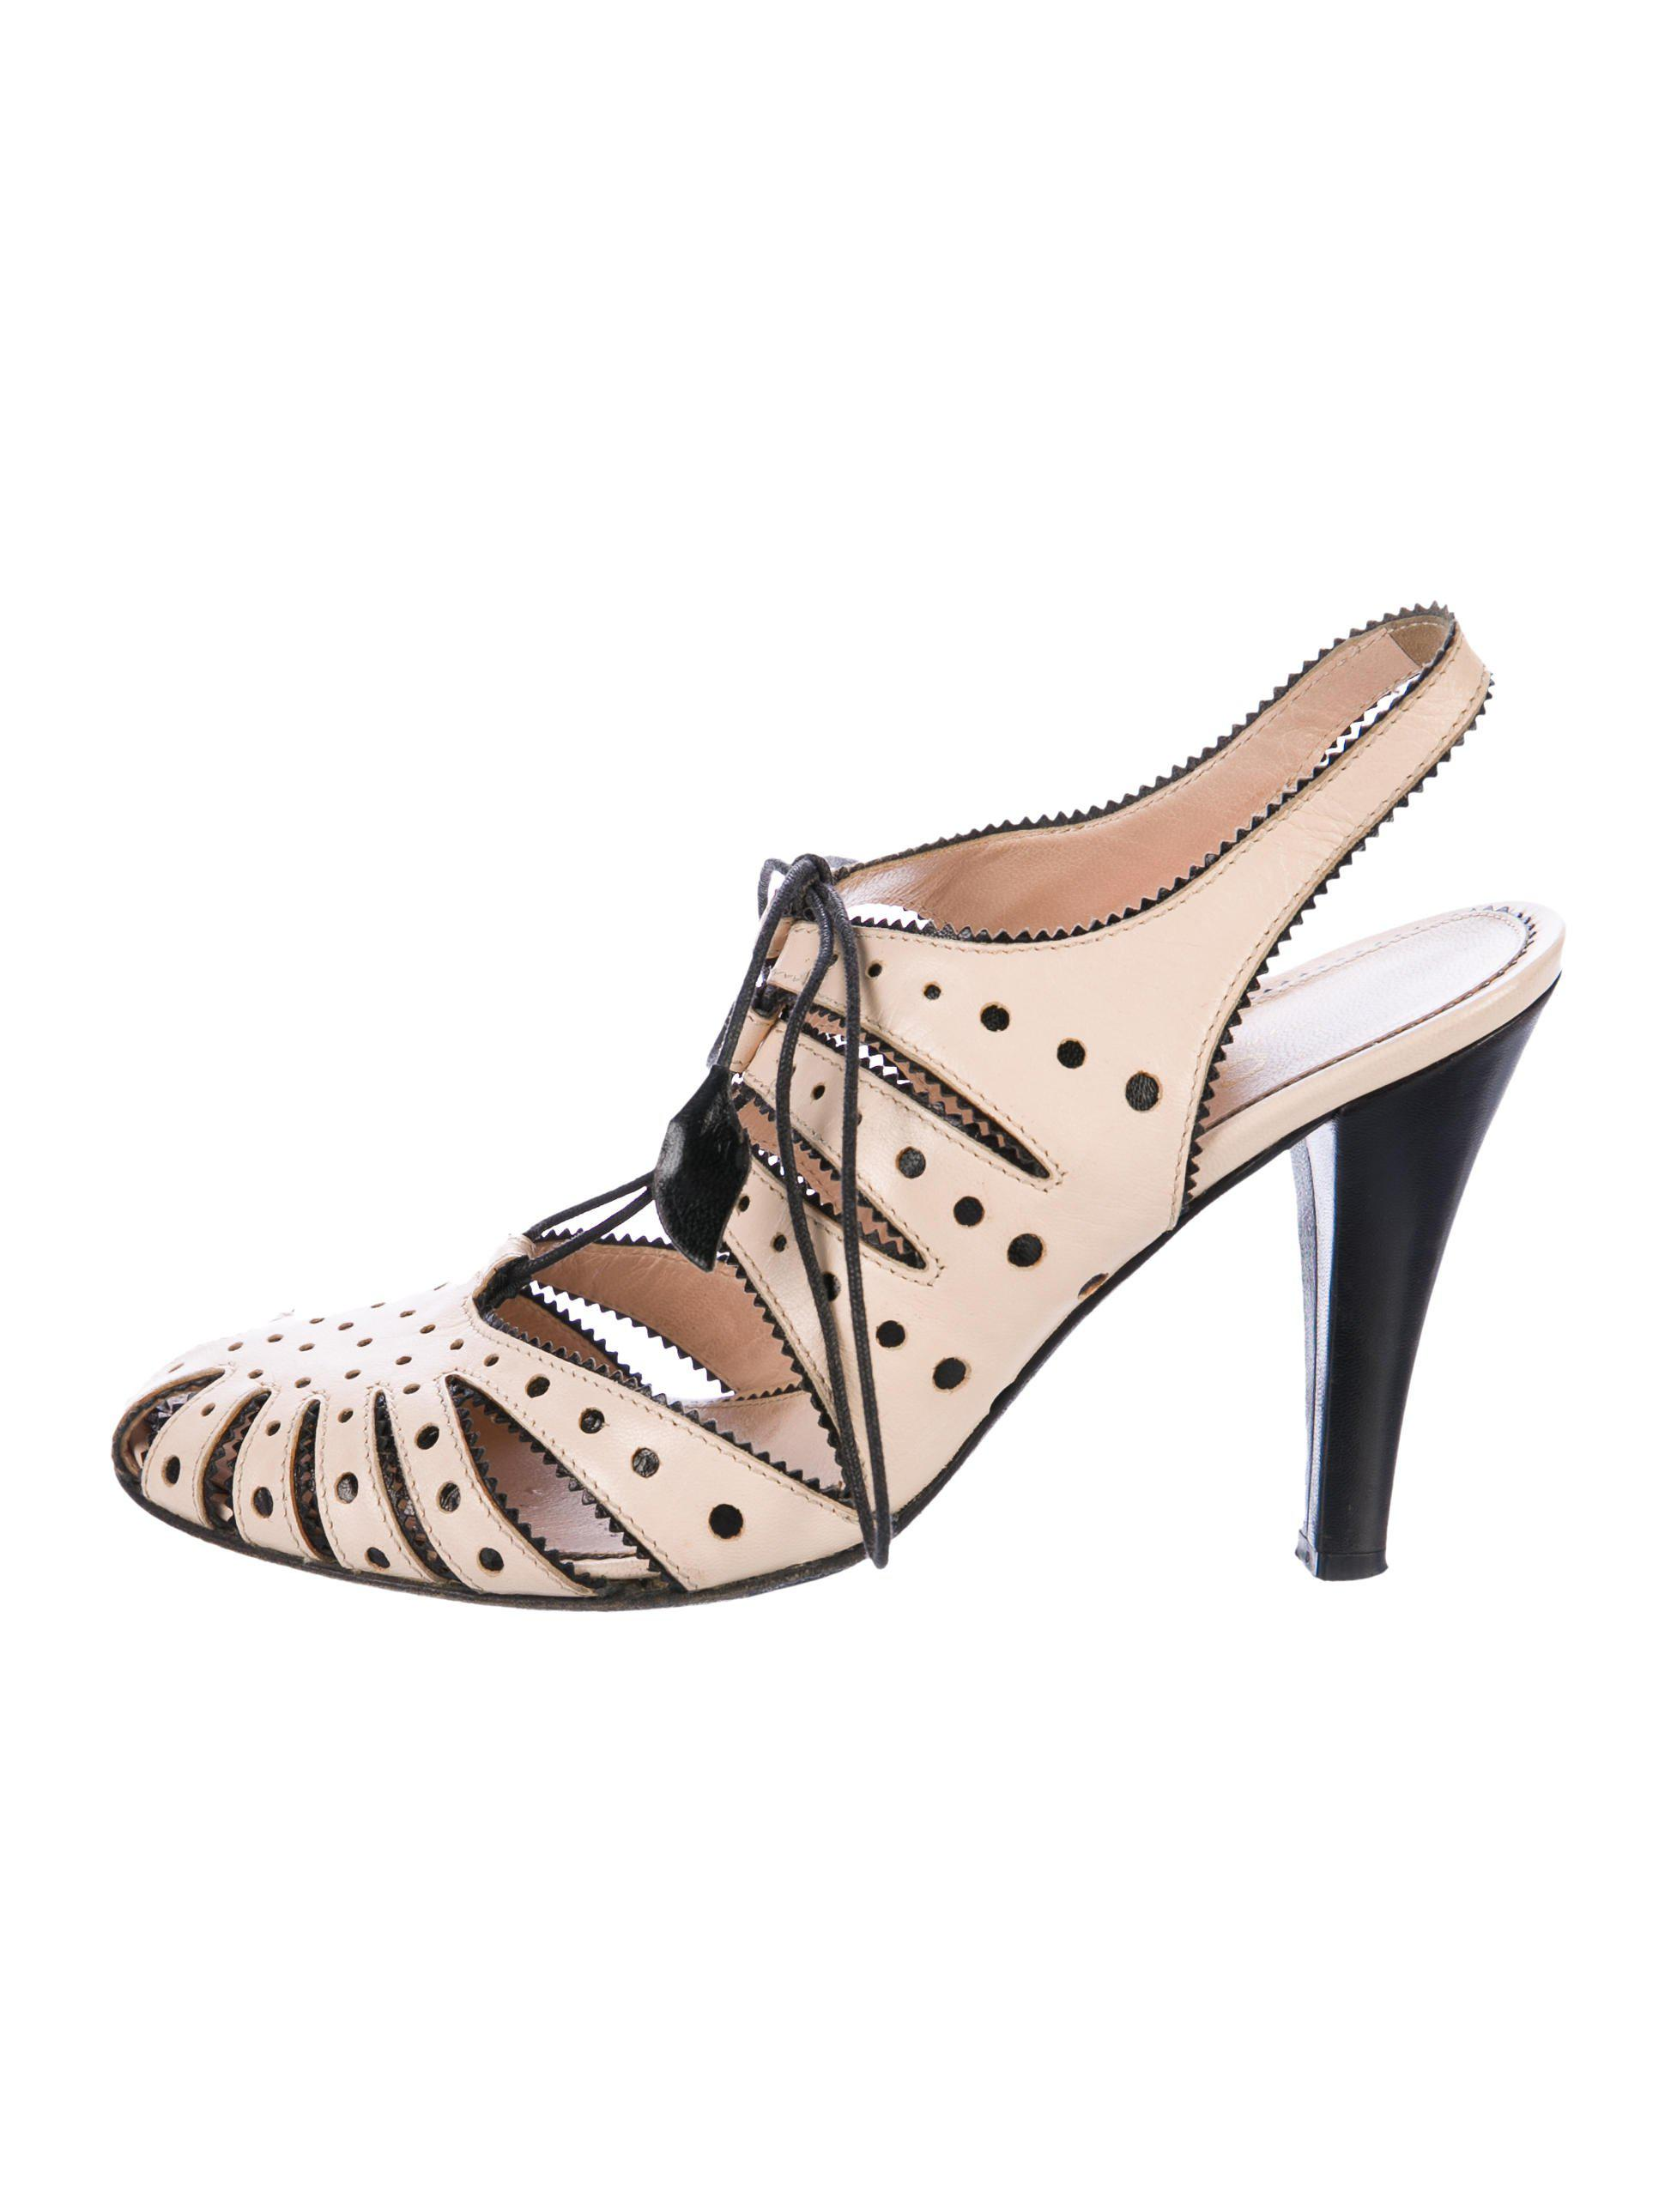 02bb461b453 Lyst - Chanel Laser-cut Slingback Pumps Nude in Natural